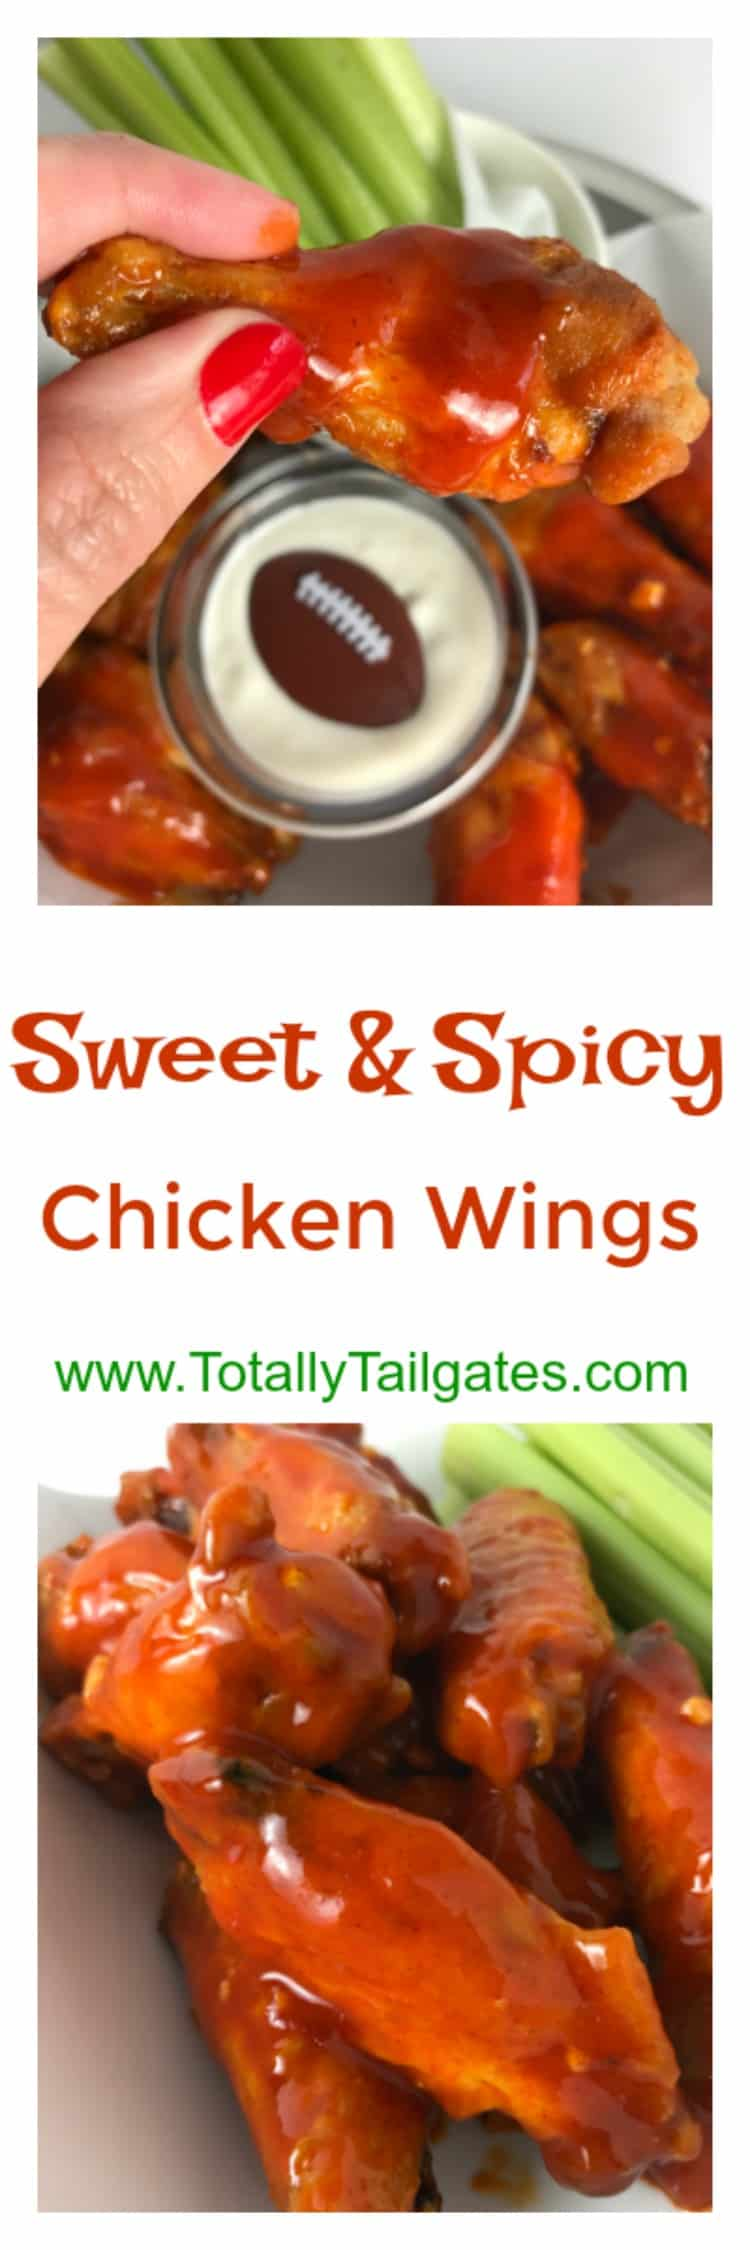 sweet & spicy chicken wings are great for a football party